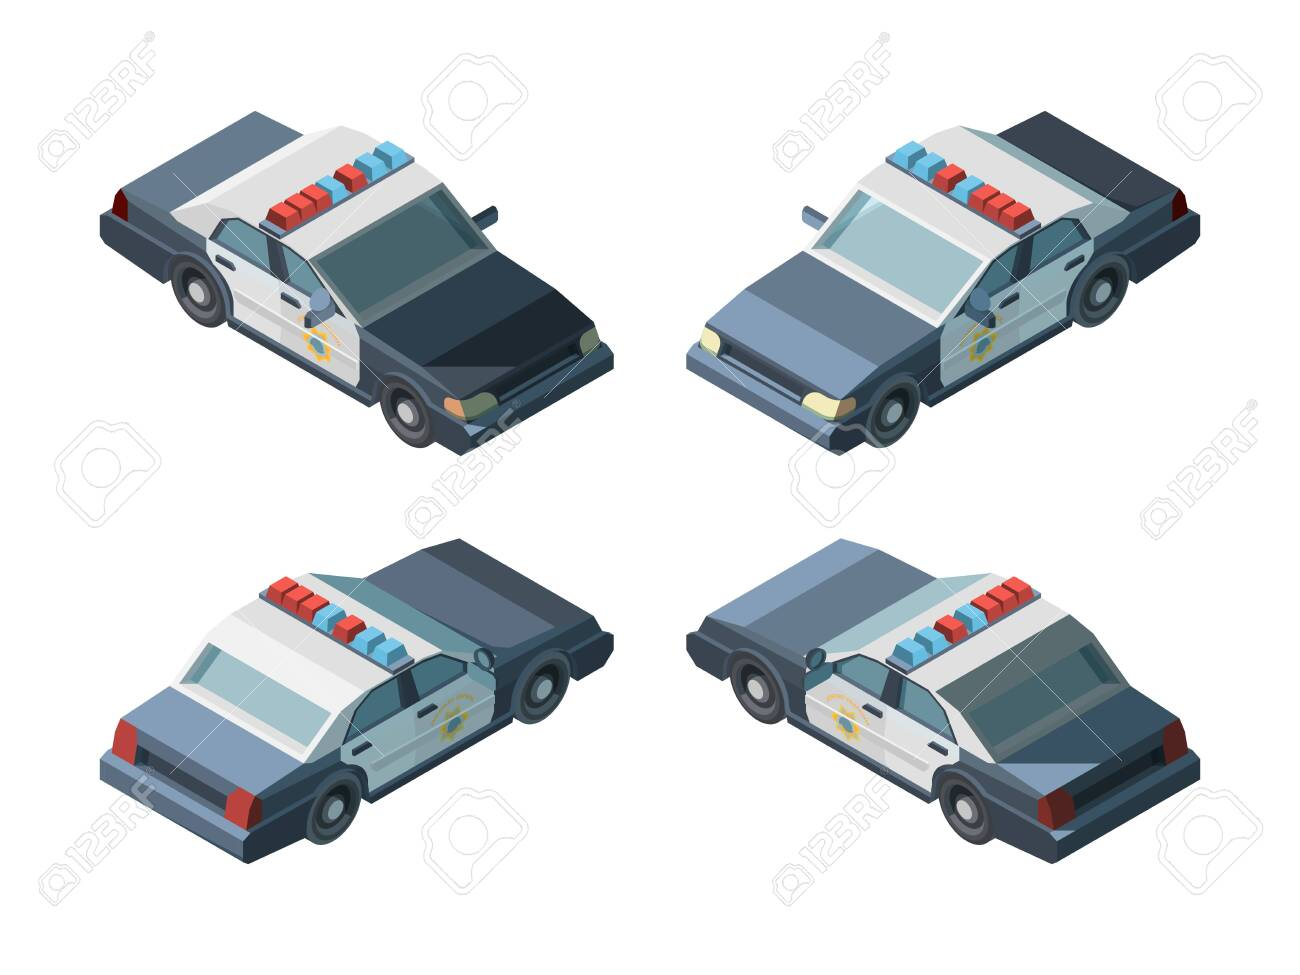 Police car. Emergency isometric vehicles different views police chase vector. Transport emergency police car, vehicle isometric and 3d automobile illustration - 157765972